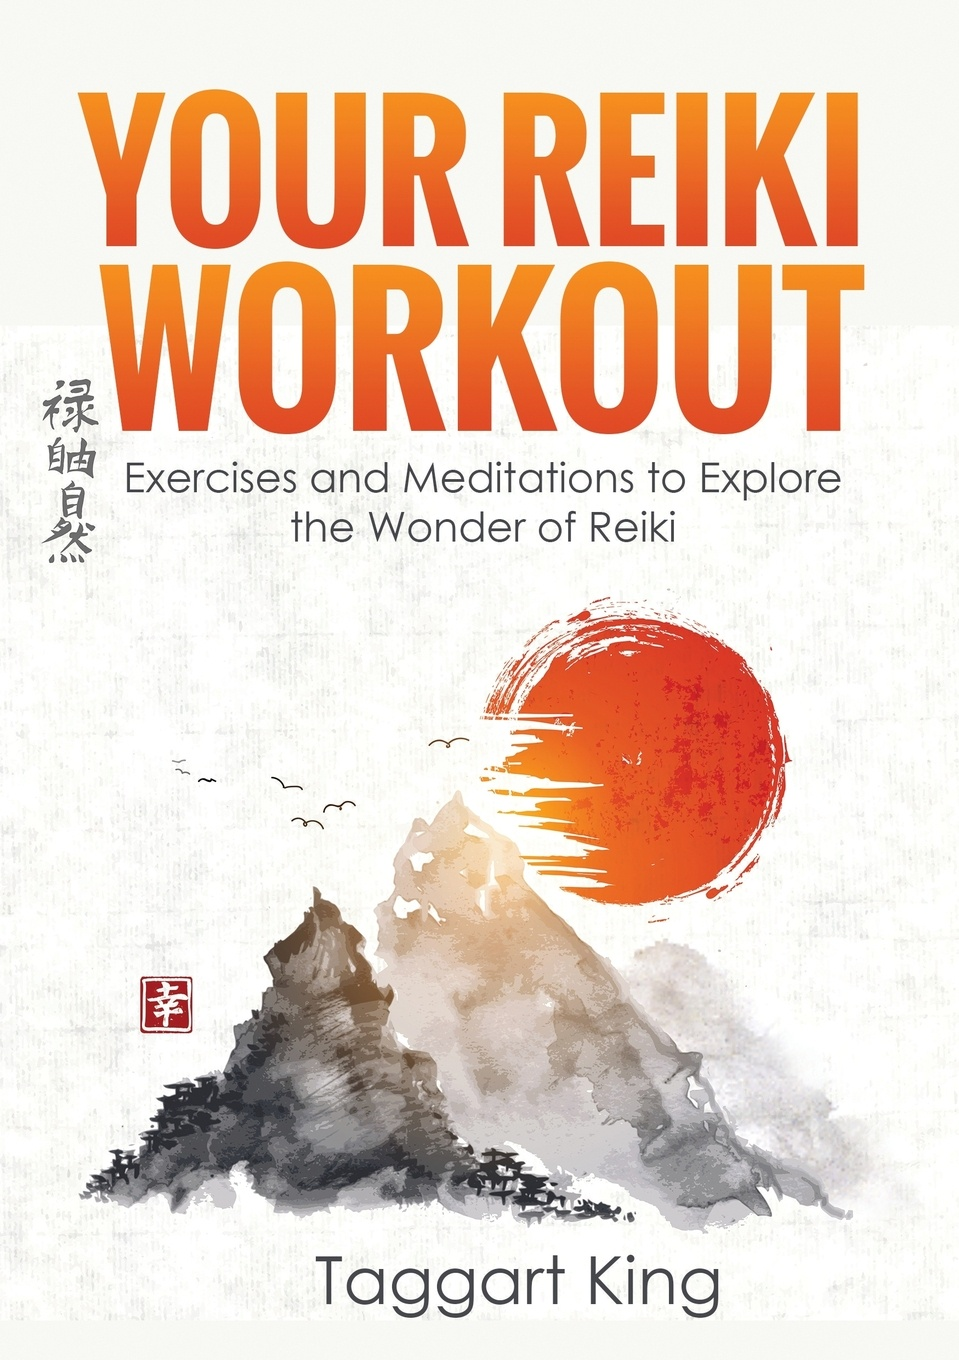 Фото - Taggart W King Your Reiki Workout. Exercises and Meditations to Experience the Wonder of Reiki Healing kathleen prasad the animal reiki handbook finding your way with reiki in your local shelter sanctuary or rescue